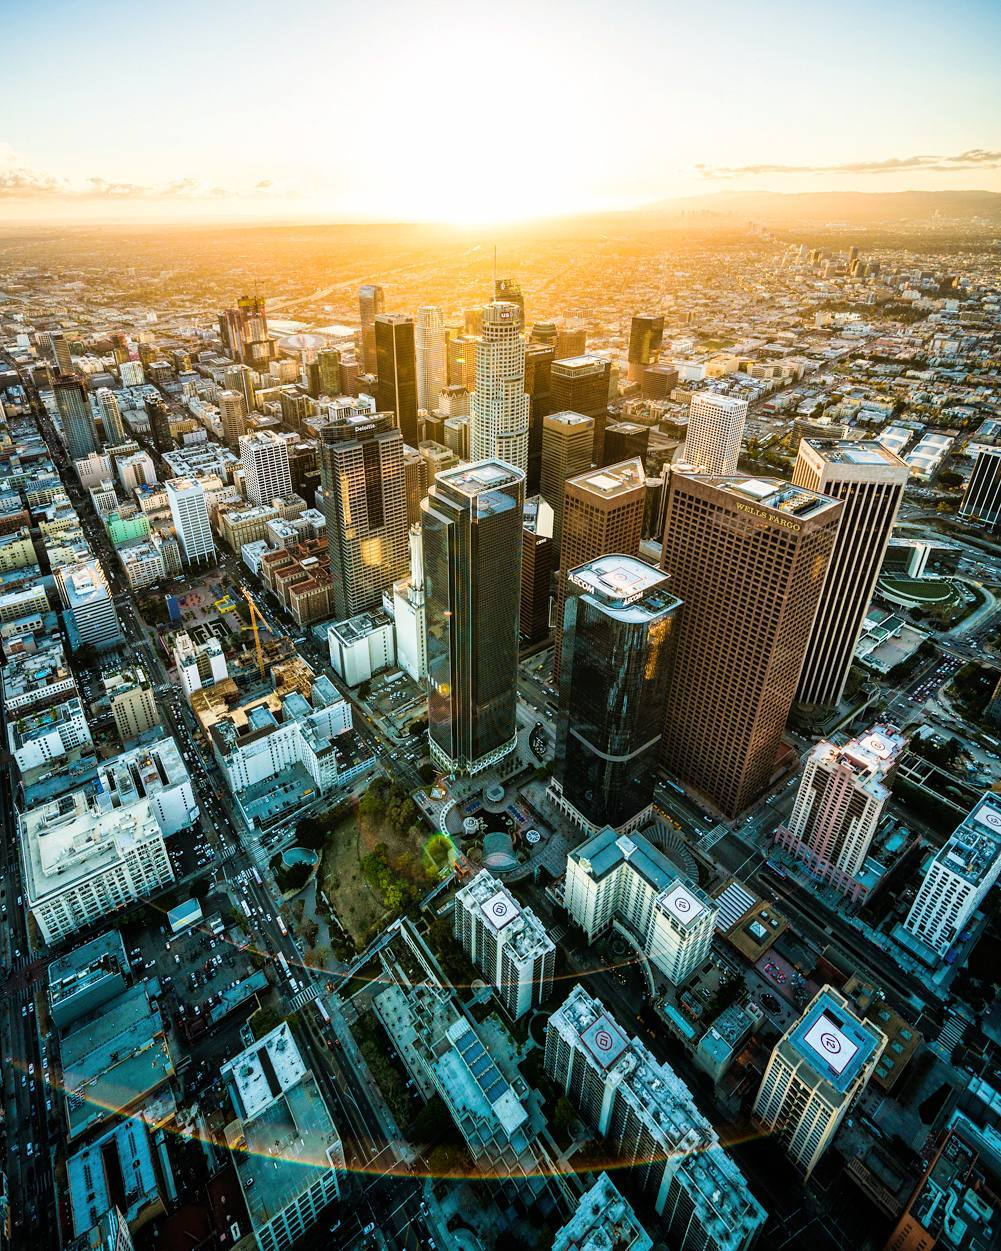 Sunset flight over Downtown Los Angeles.